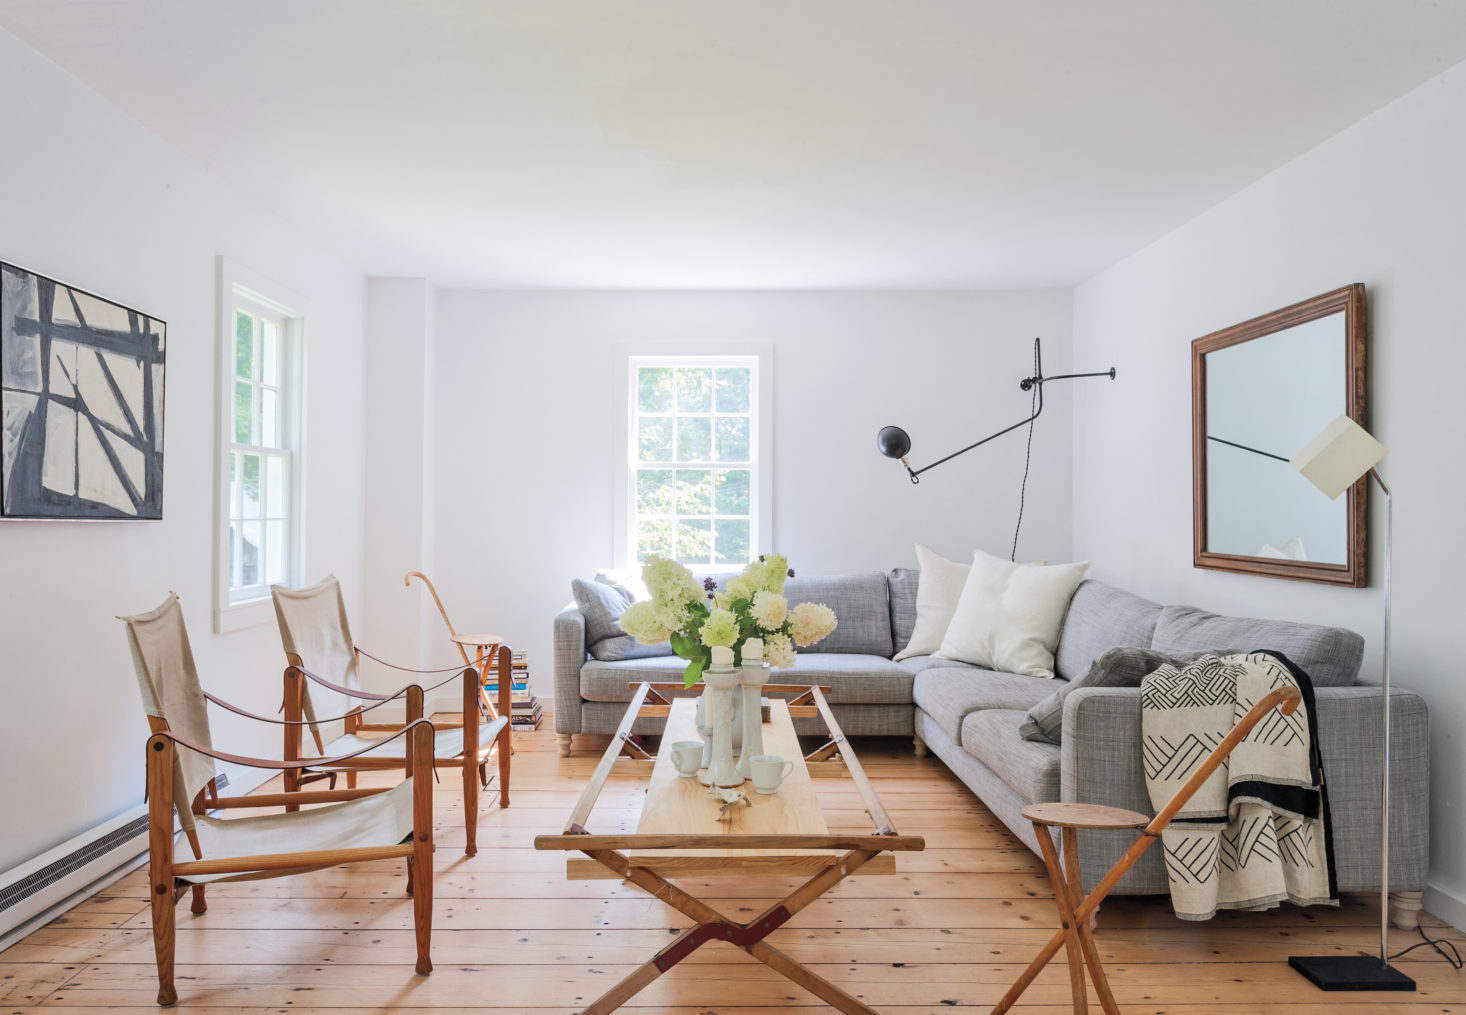 In their Hudson Valley living room, Robert Highsmith and Stefanie Brechbuehler of Workstead maximize a sense of space by using leggy, low-profile furniture and fixtures as well as a mirror over the couch. They also keep the space looking uncluttered by ditching the drapes and the rug.Photograph by Matthew Williams fromRemodelista: A Manual for the Considered Home.